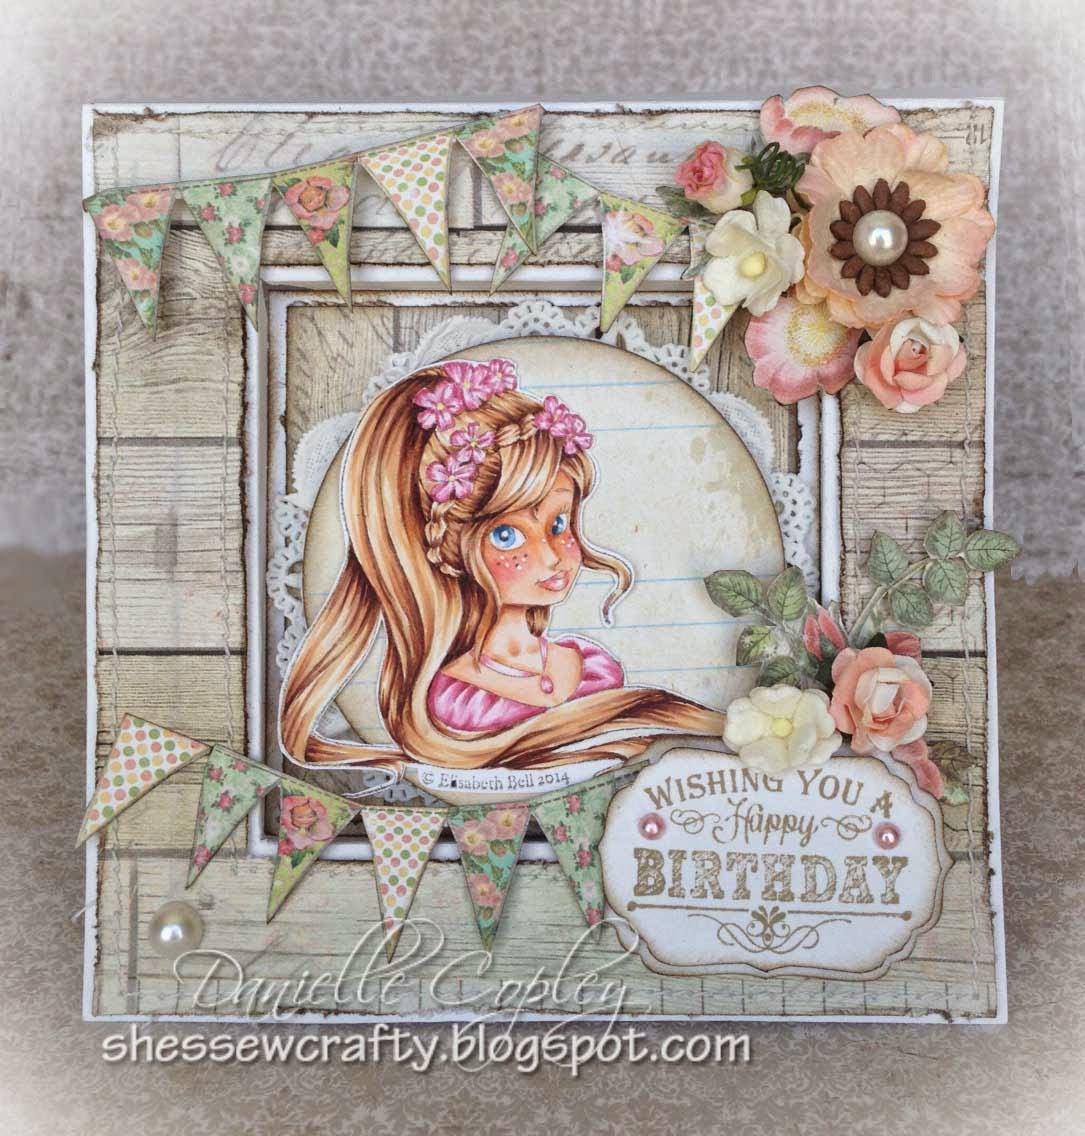 Whimsy's Elizabeth Bell's Miss Chloe Vignette using Prima's Fairy Rhymes paper